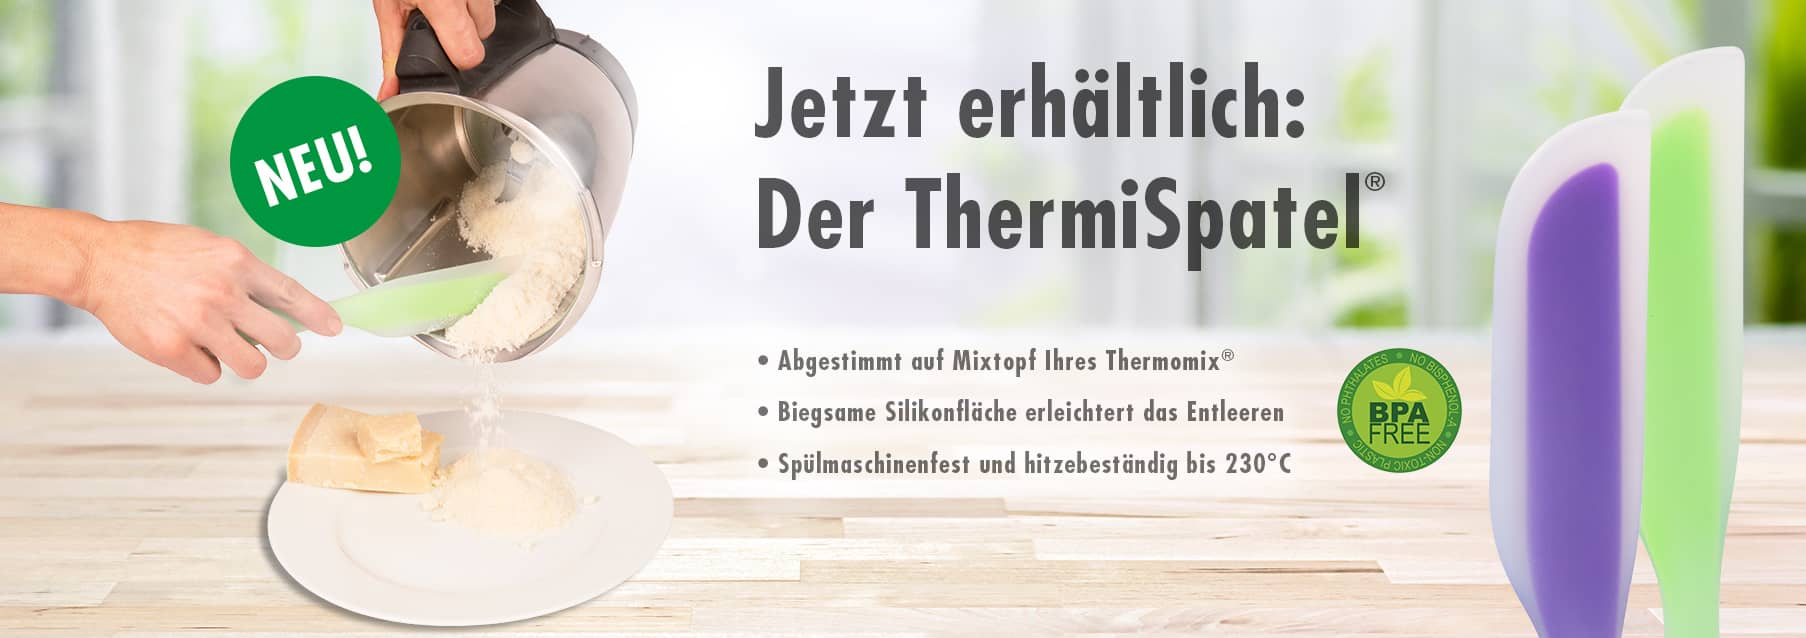 ThermiSpatel-Header-WMX